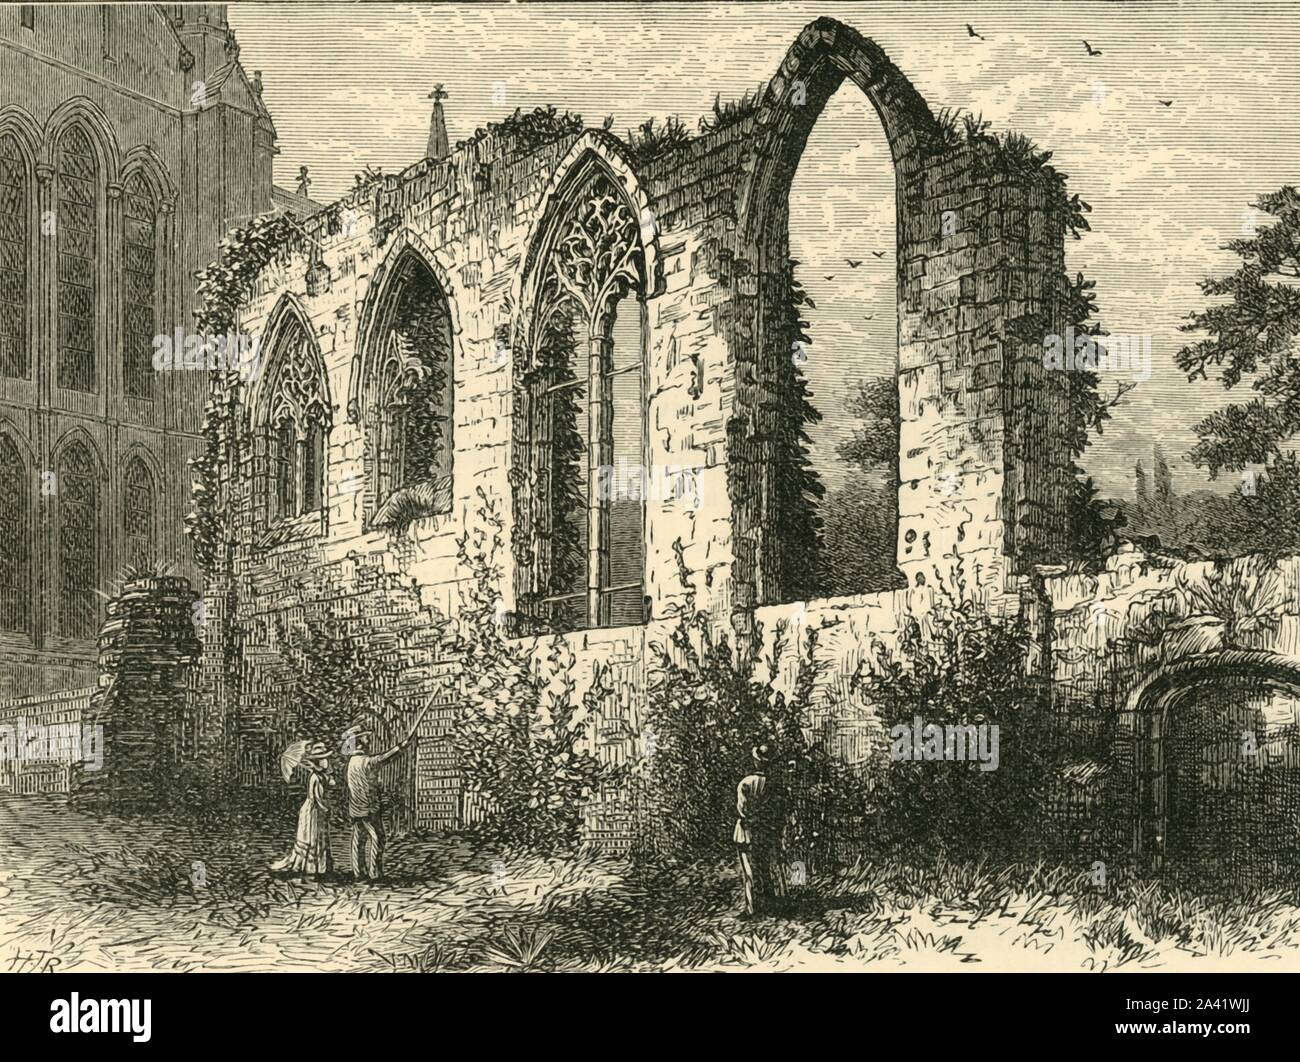 """'Ruins of the Guesten Hall', 1898. Guesten monastic guest hall, built c1320 at Worcester cathedral underwent plans for renovations by architect, George Street in 1854, the Dean and Chapter decided against repairs and the building was left to ruin.  From """"Our Own Country, Volume III"""". [Cassell and Company, Limited, London, Paris & Melbourne, 1898] Stock Photo"""